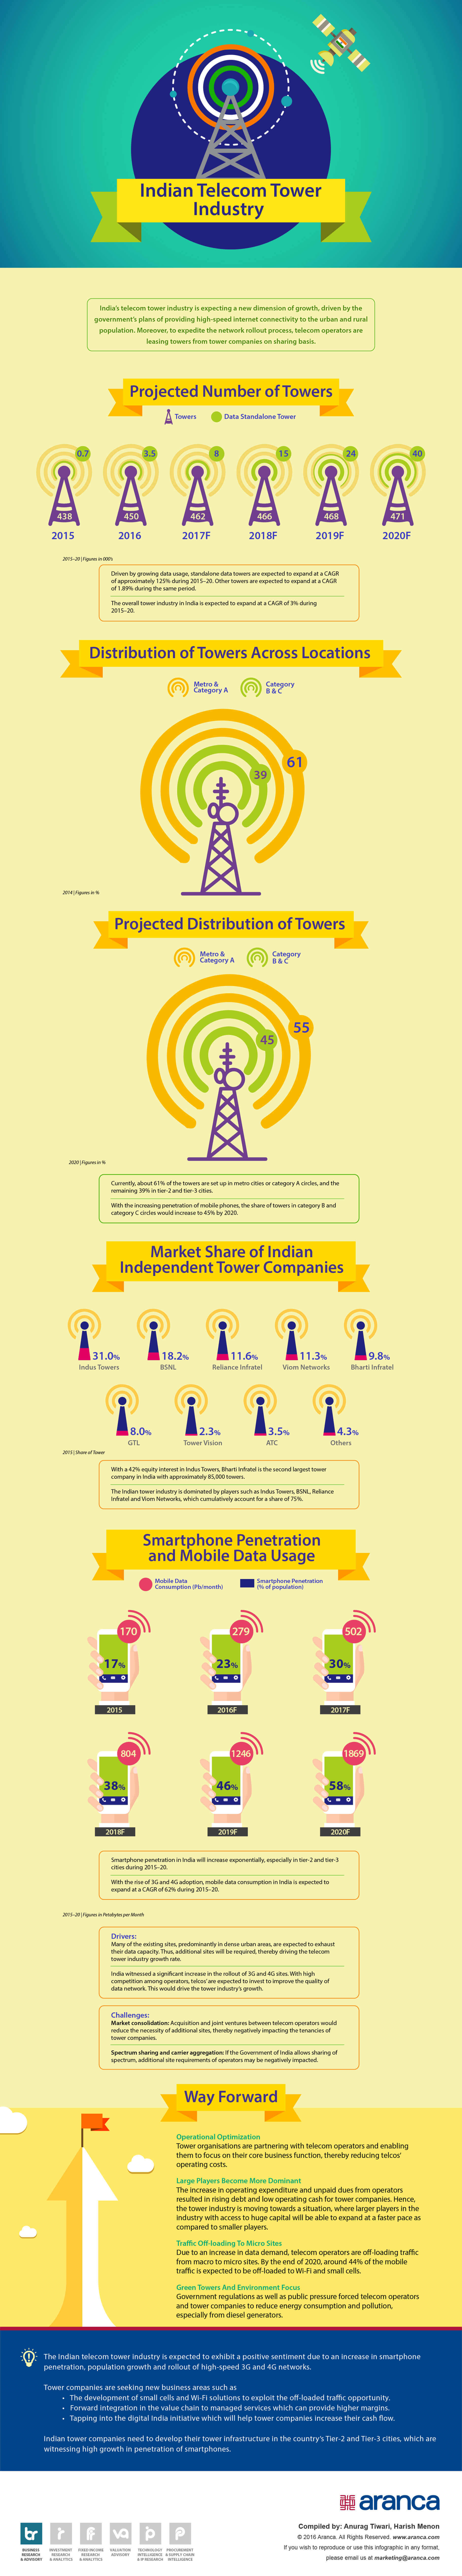 Indian Telecom Tower Industry